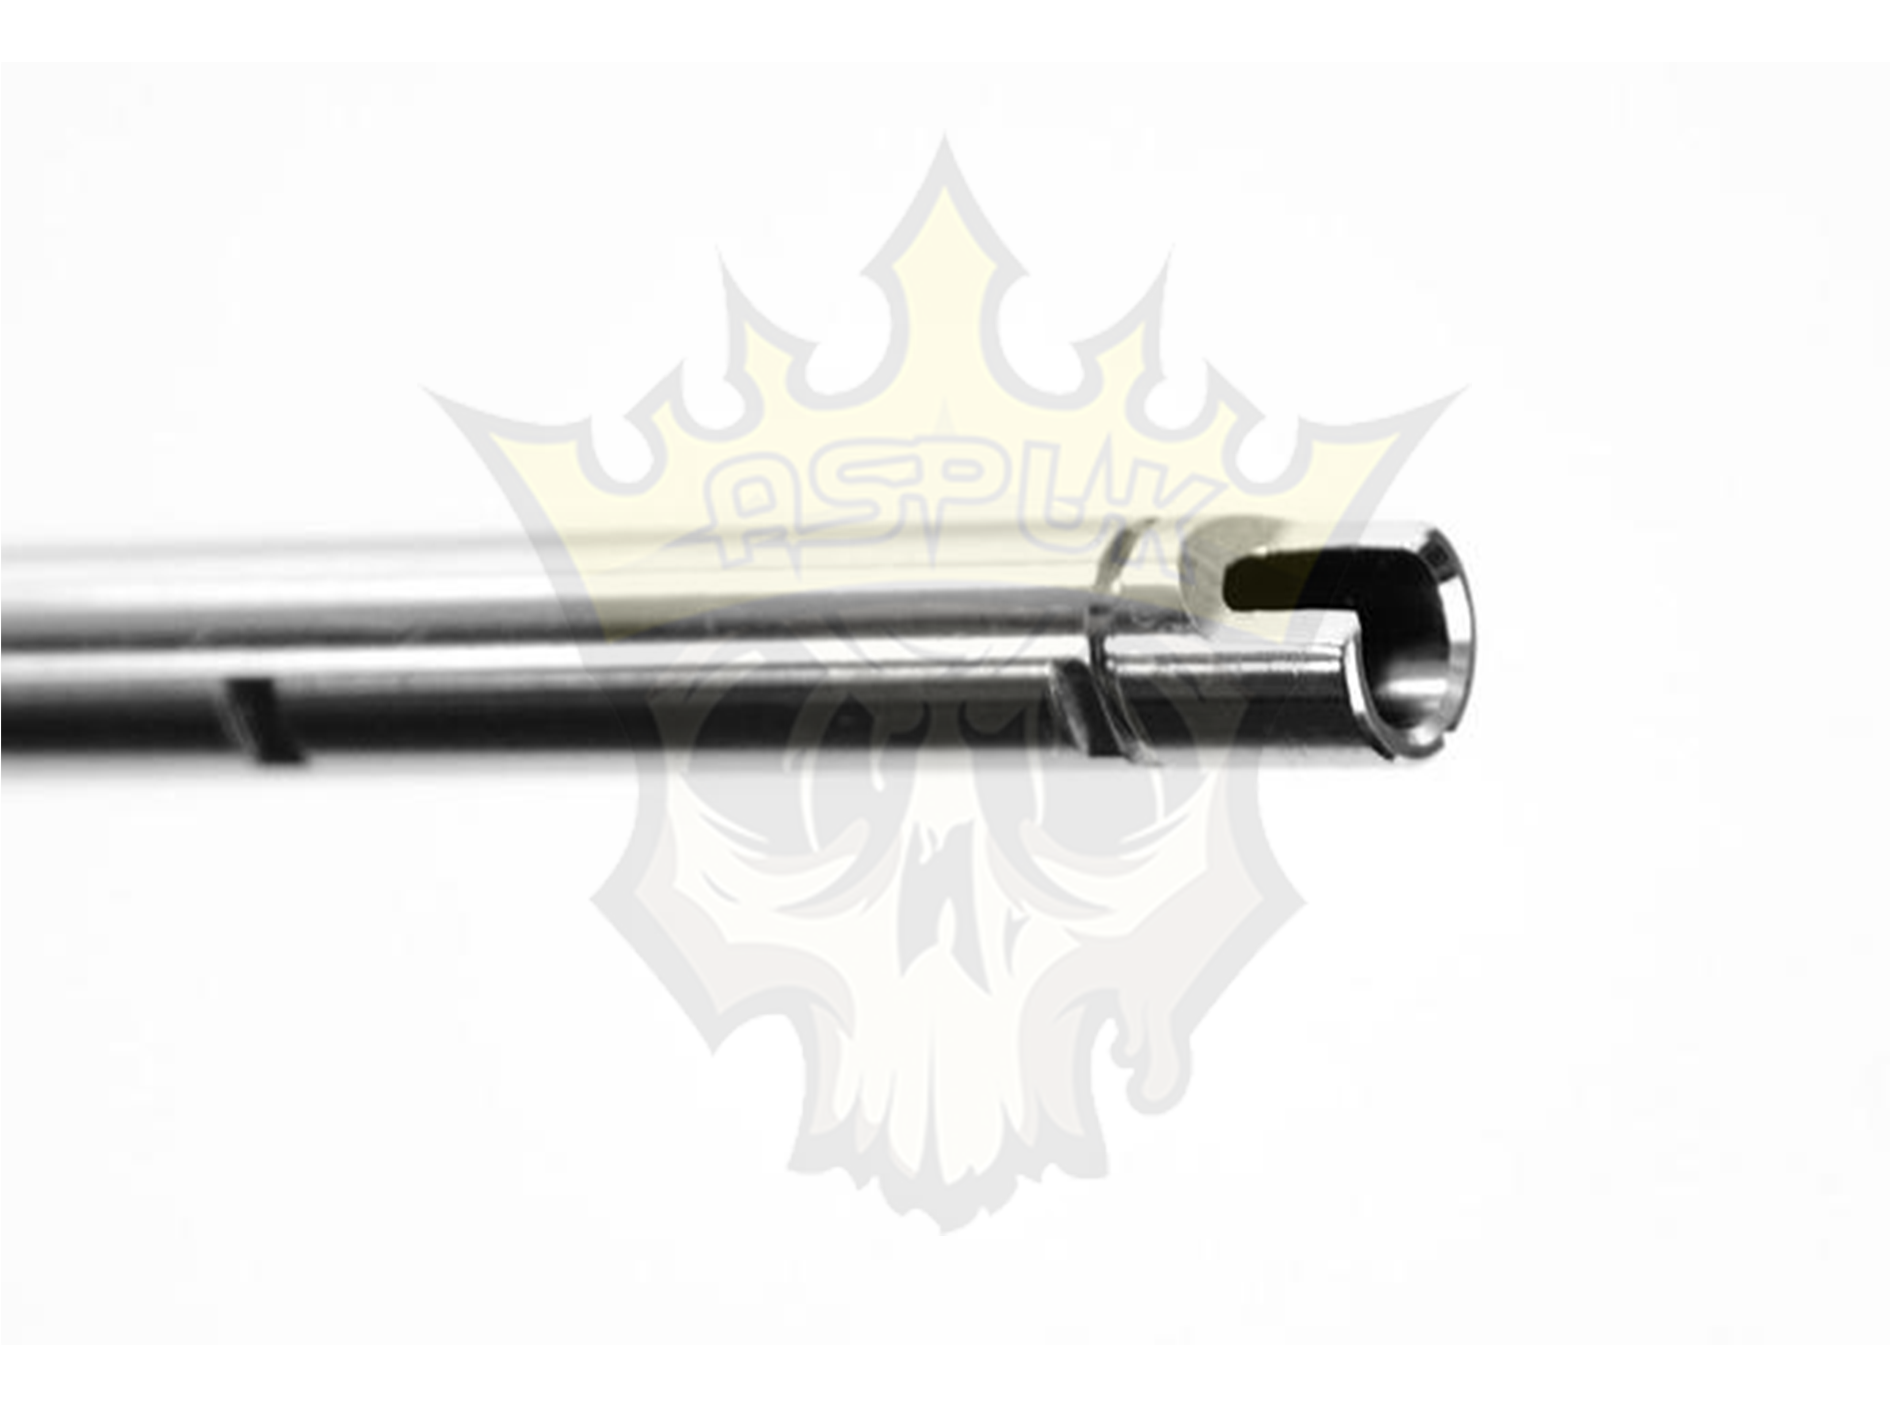 SHOOTER 6,03MM INNER BARREL 430MM FOR AEG SERIES AND TM VSR-10